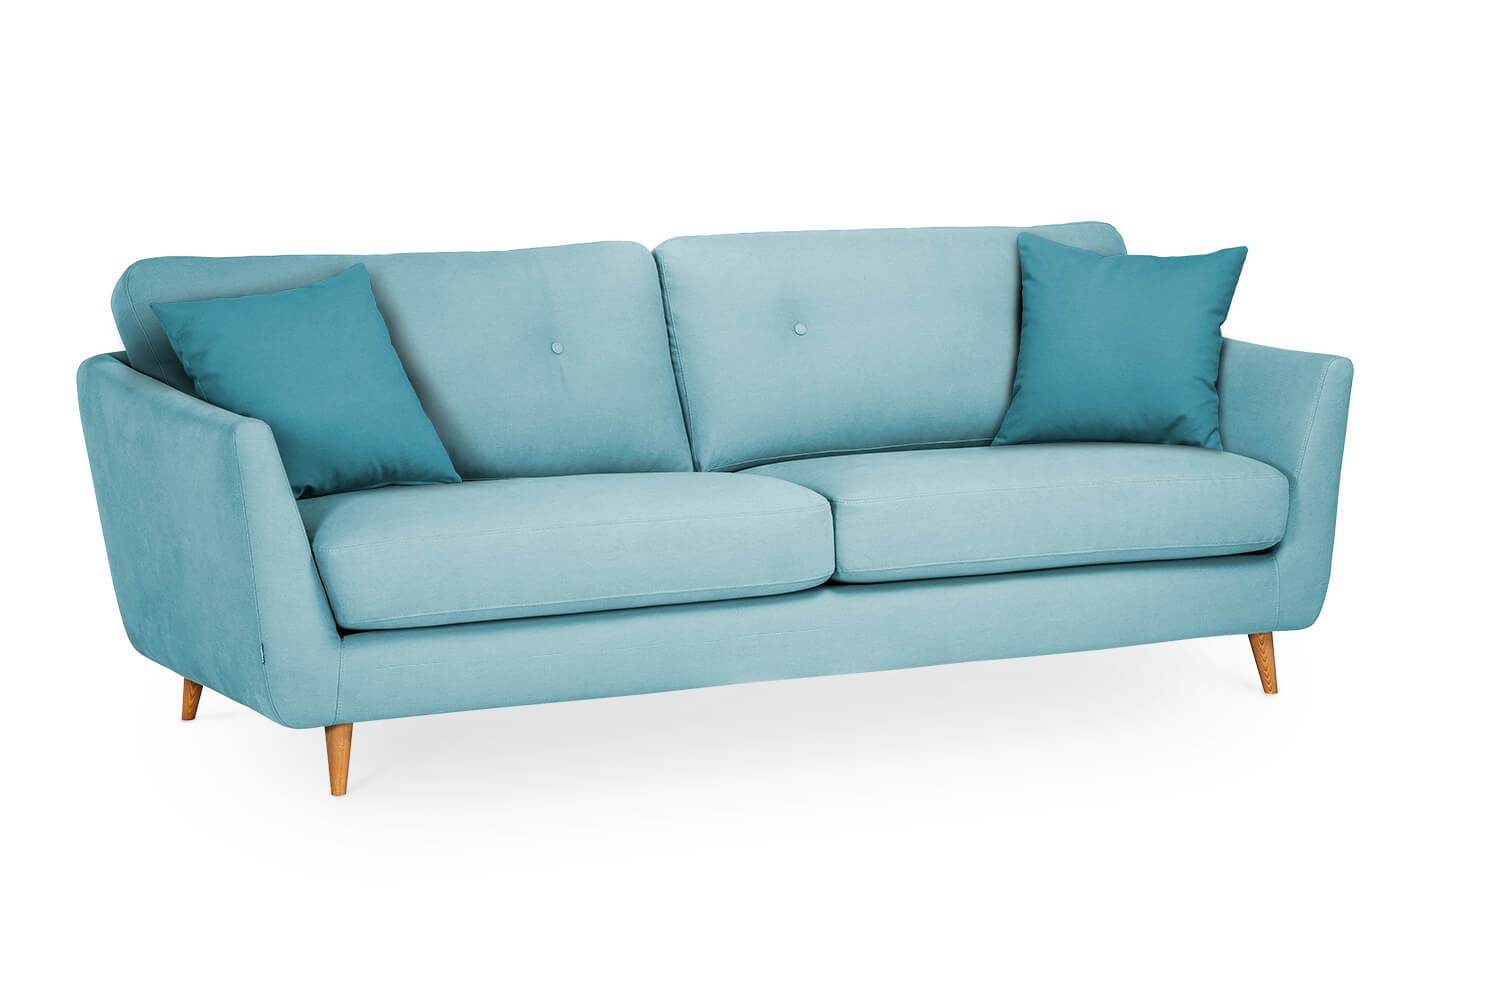 In picture: Blaze 3 LC with buttoned back cushions (optional). Fabric: Delta 5142. Leg: 50, oak.